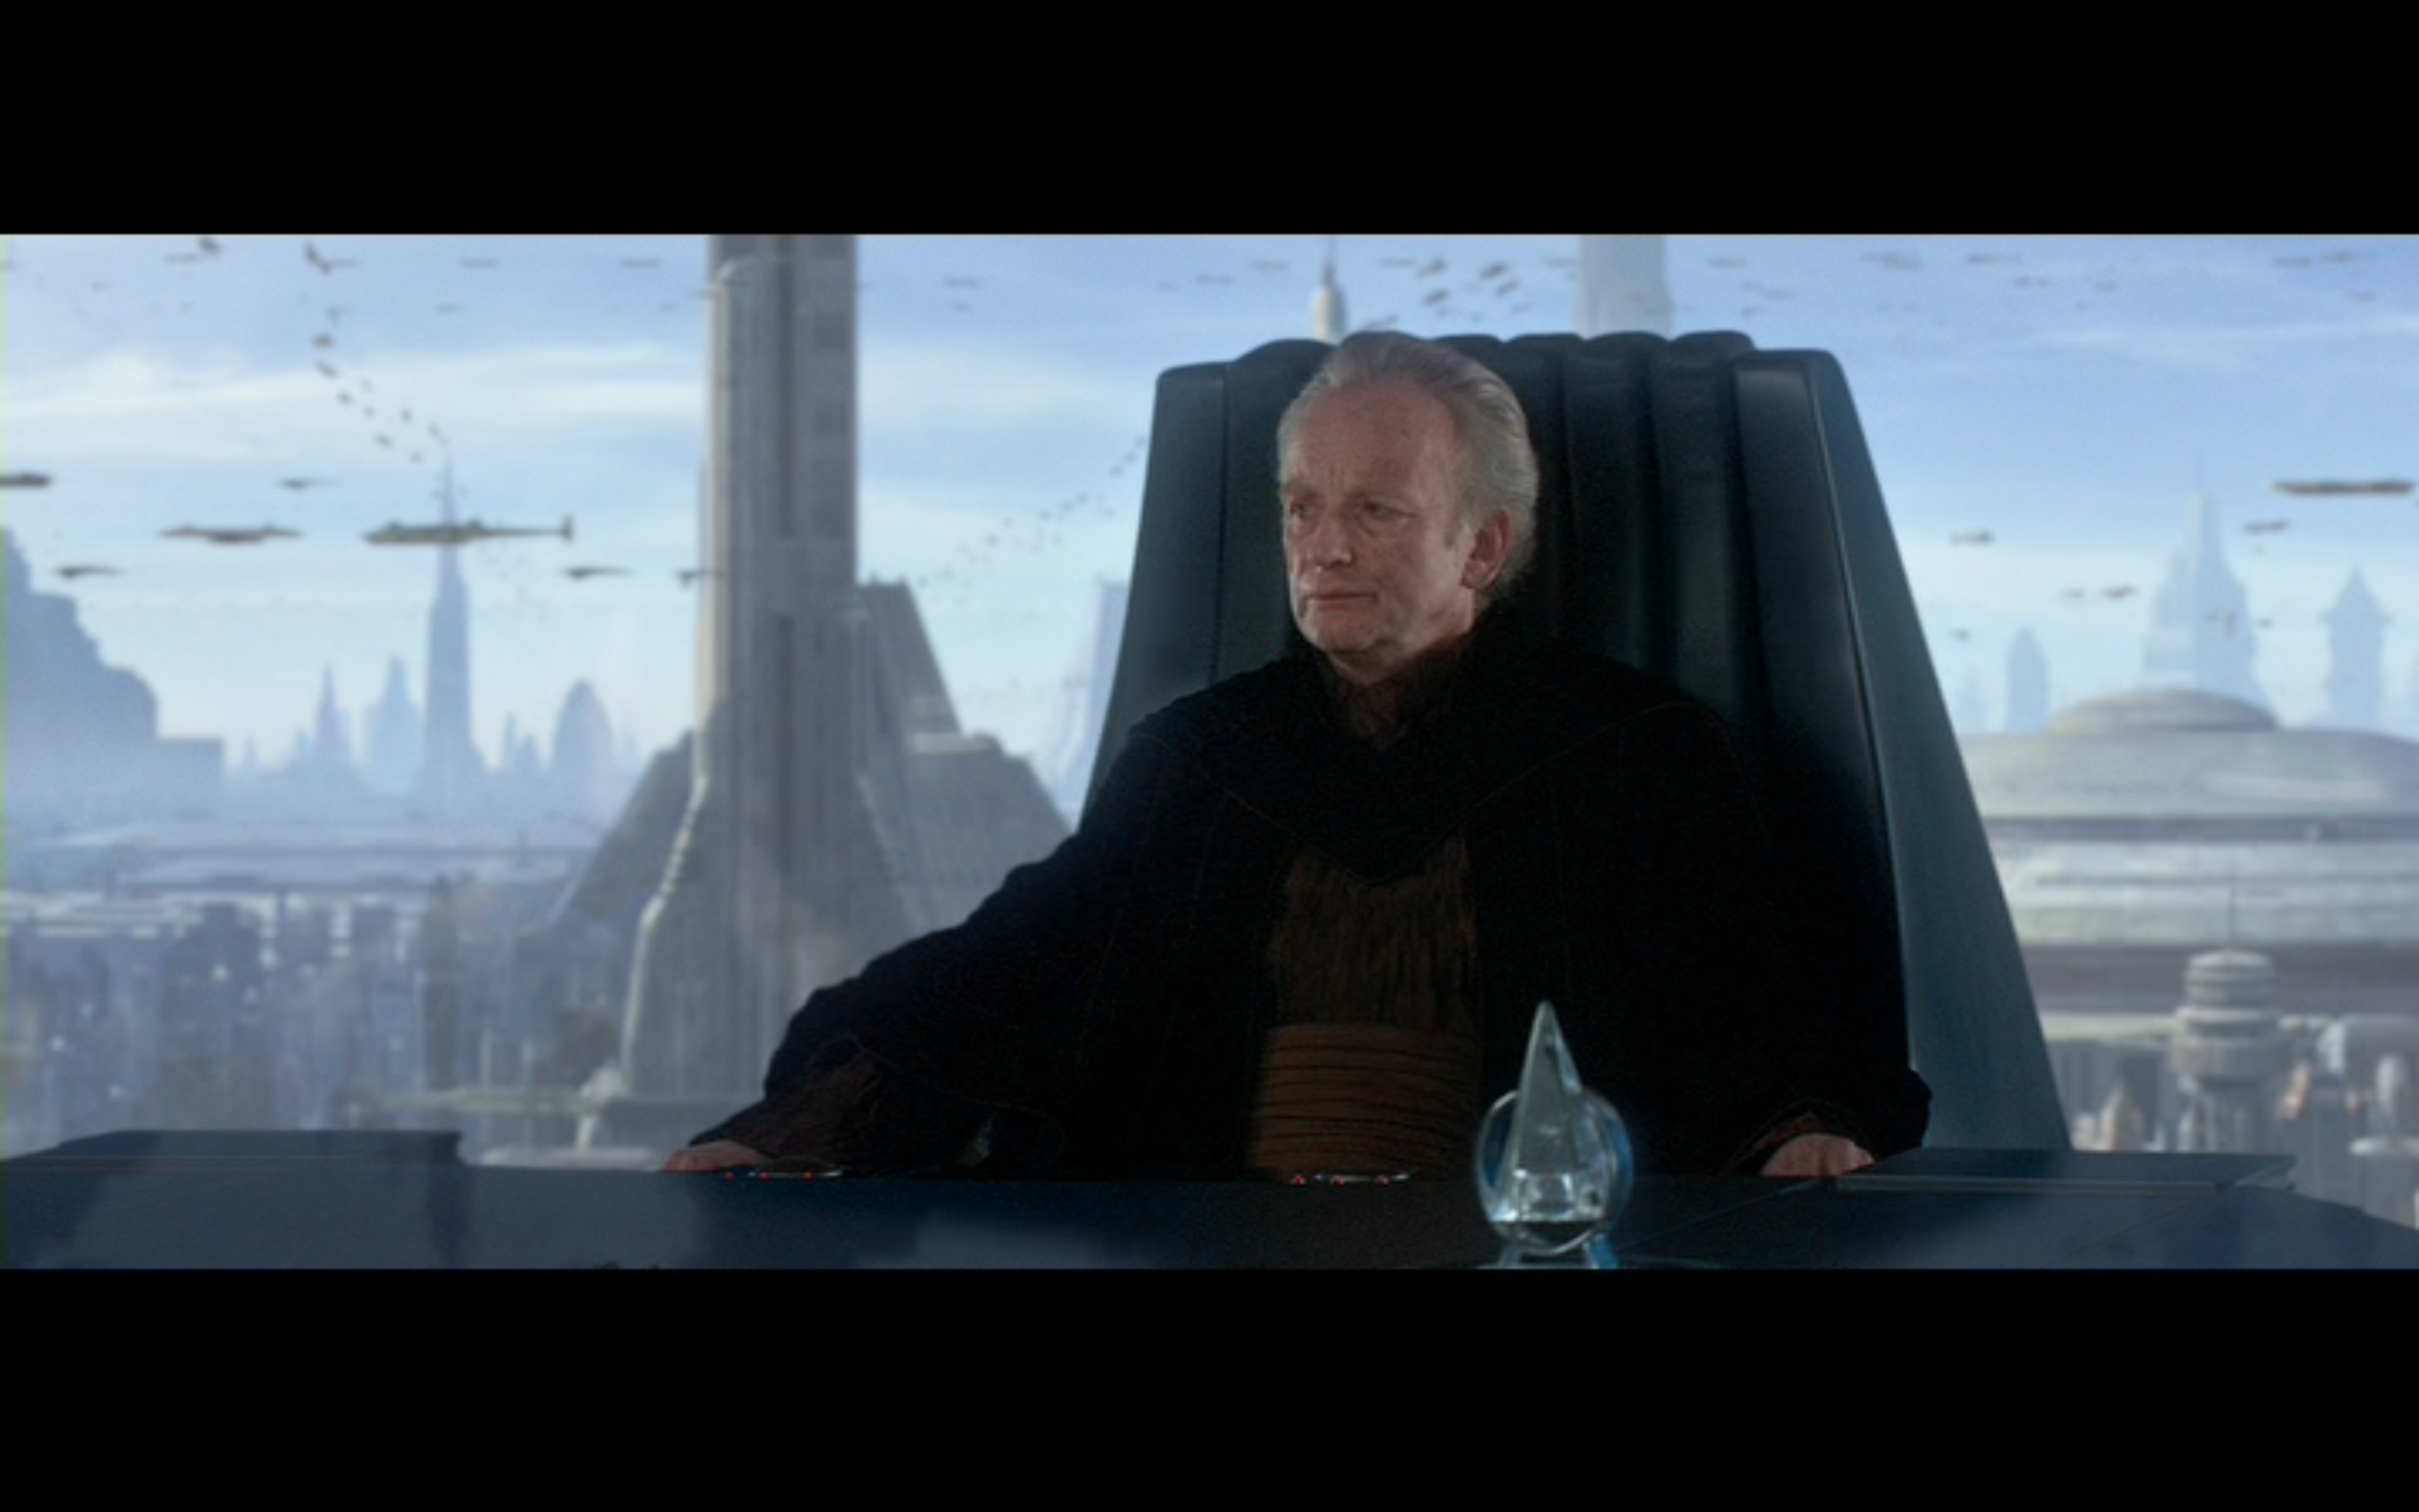 Figure 2: When we first meet him in  The Phantom Menace , Sheev Palpatine appears to be a humble senator, but he quickly rises through the senate's ranks and becomes the galaxy's first emperor. Photo credits: Twentieth Century Fox (DVD).